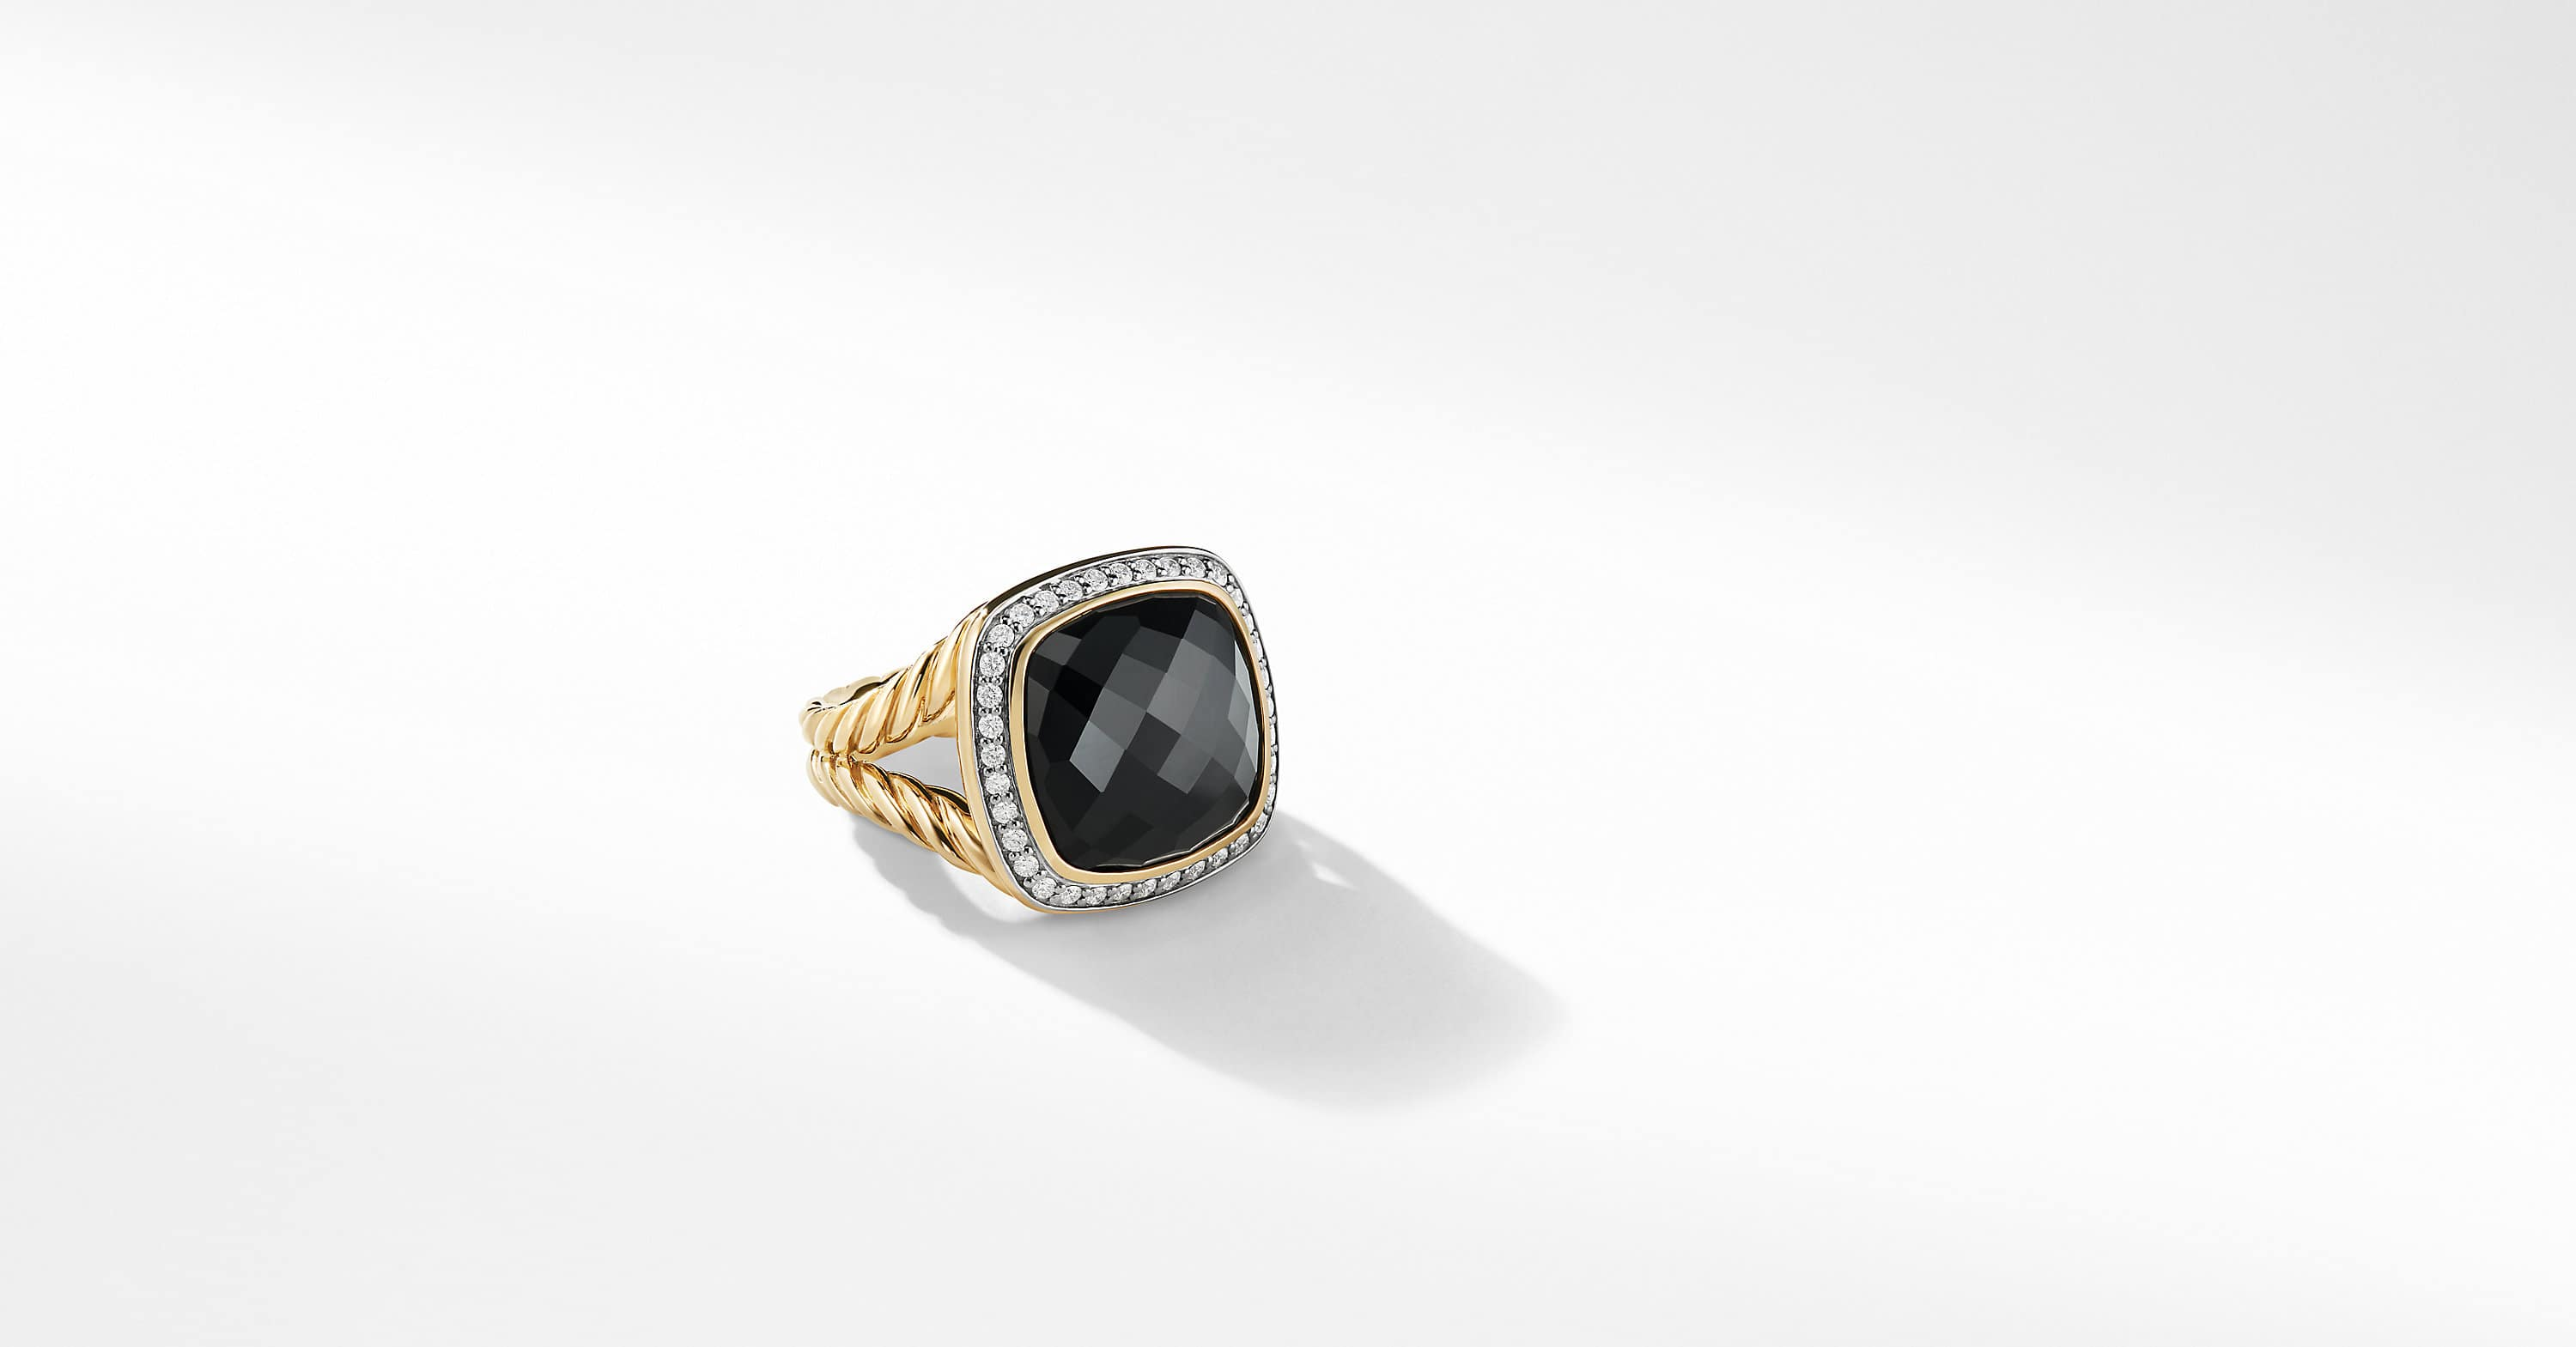 Albion Ring with Diamonds in 18K Gold, 14mm